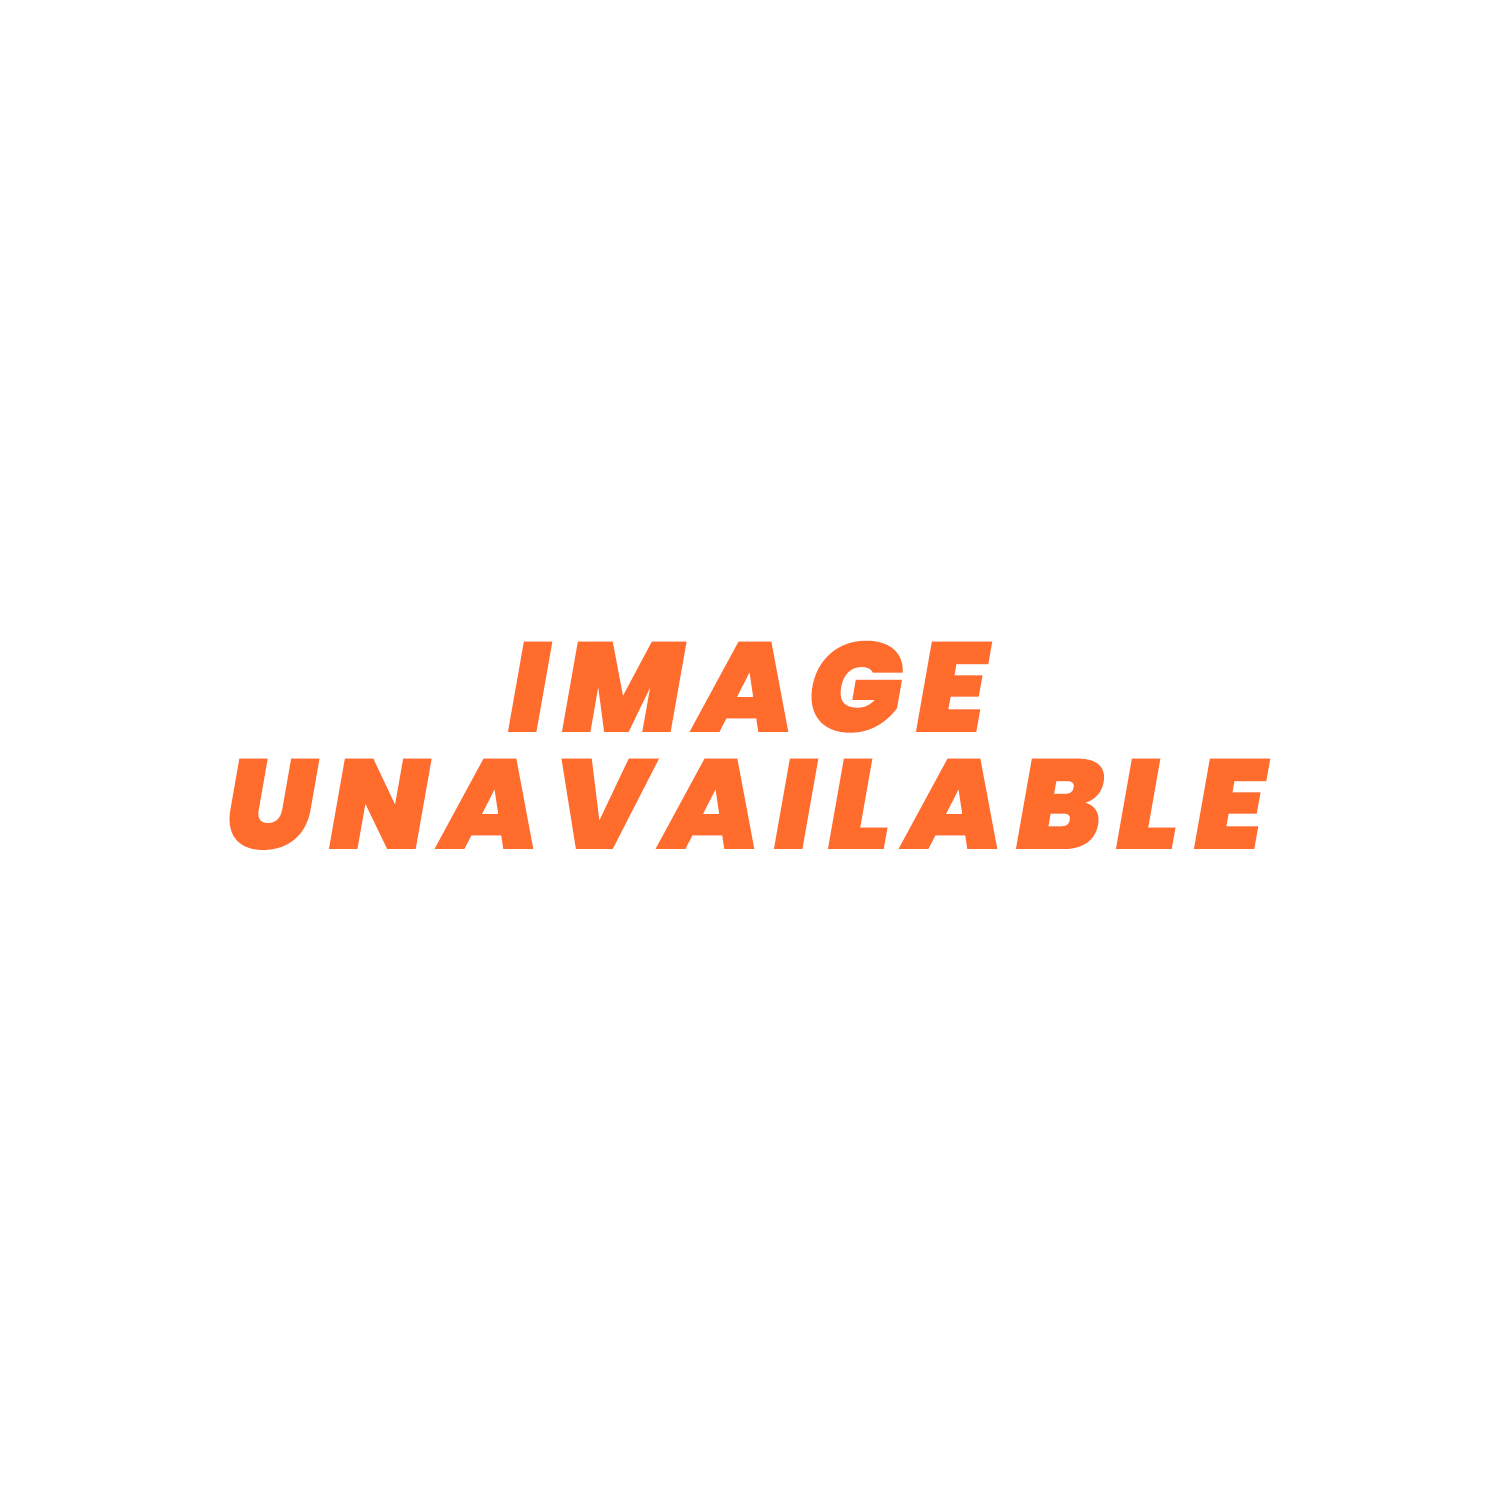 Centrifugal Supercharger Design: SPAL Centrifugal Blower